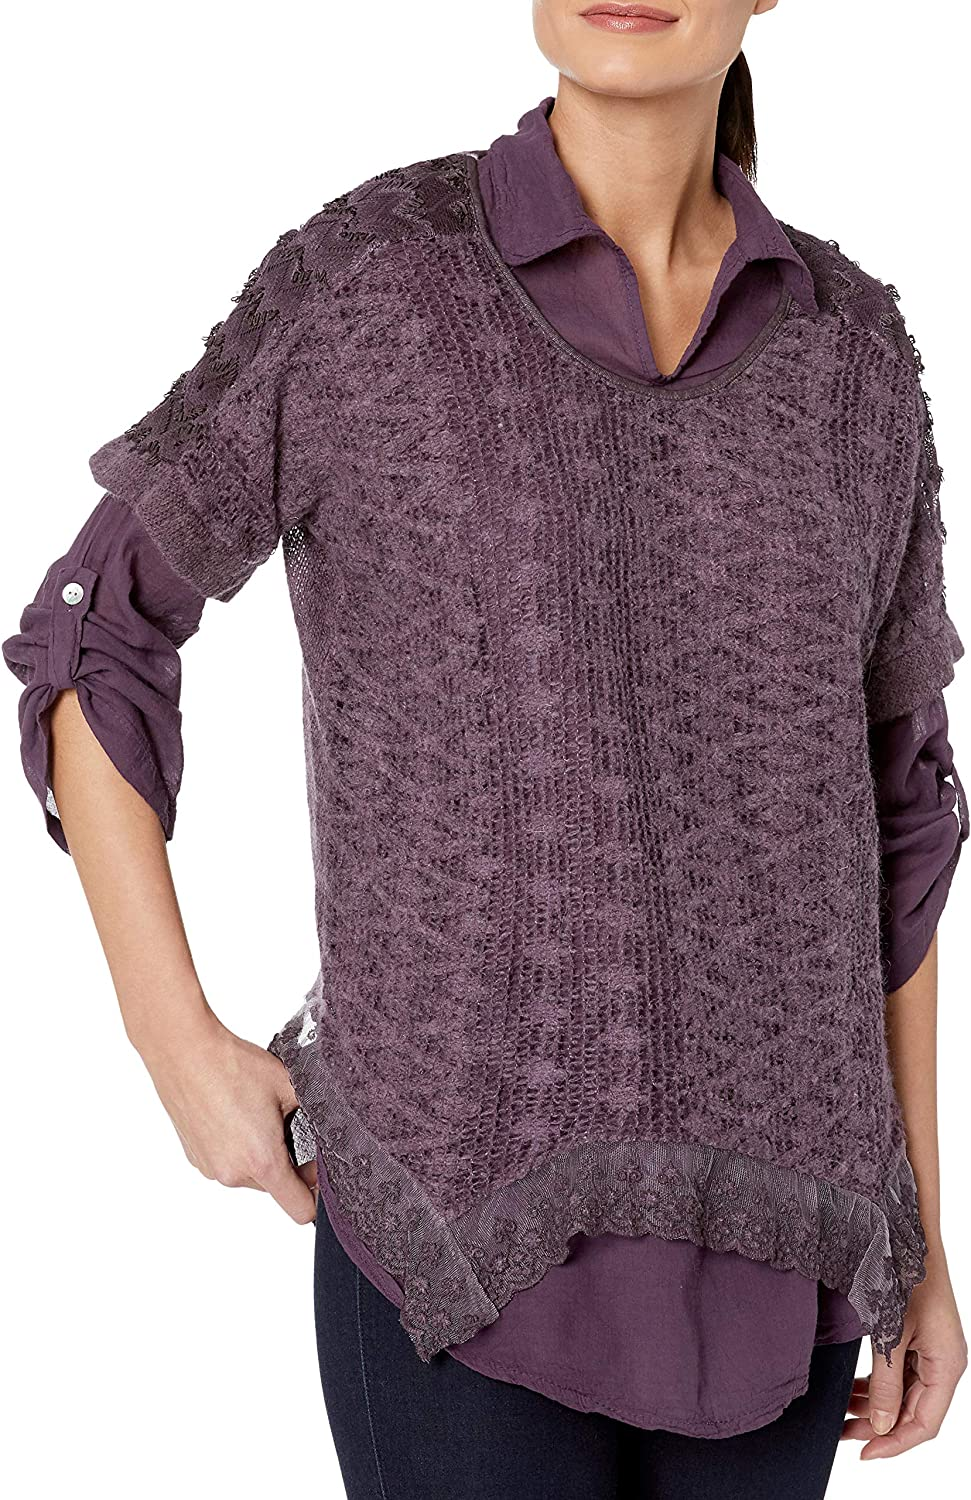 M Made in Italy Womens Embroidered Top with Scarf Set Tunic Shirt Plum